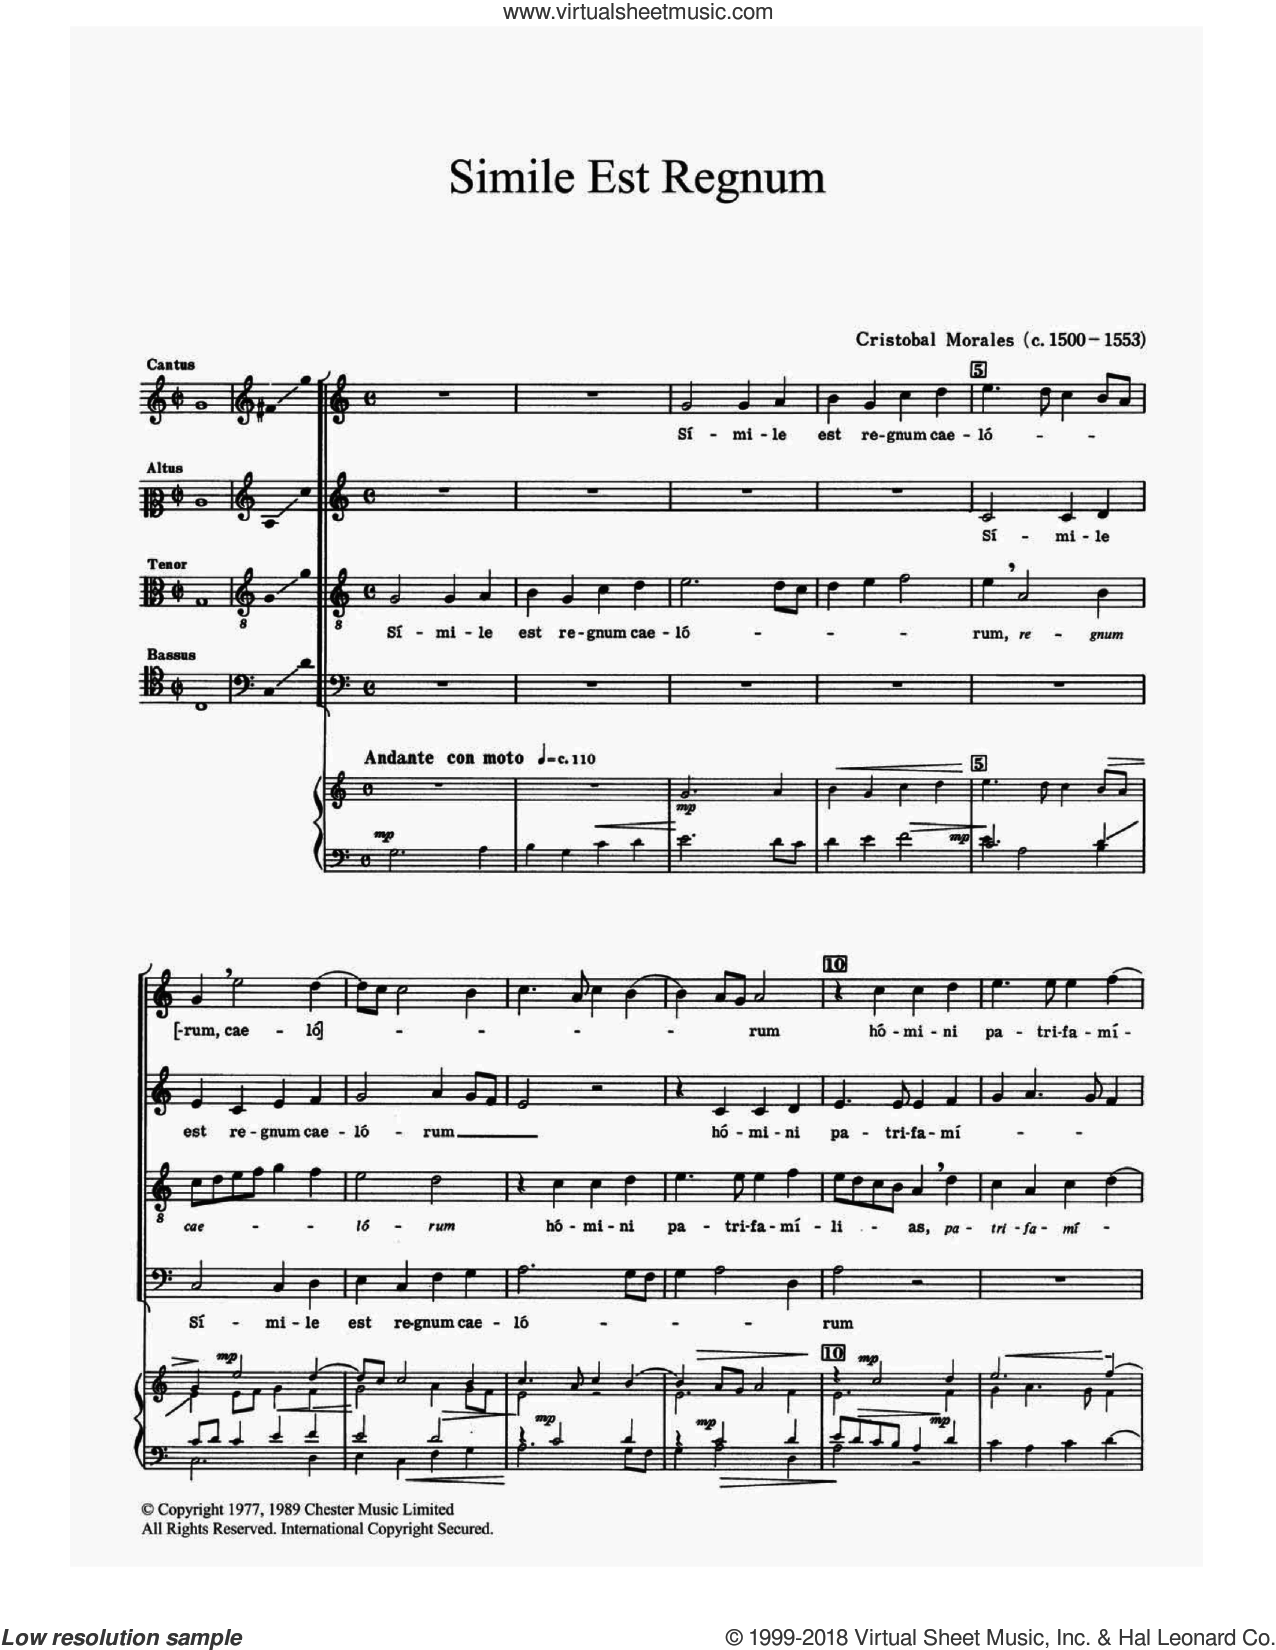 Simile Est Regnum sheet music for choir by Cristobal de Morales, classical score, intermediate skill level